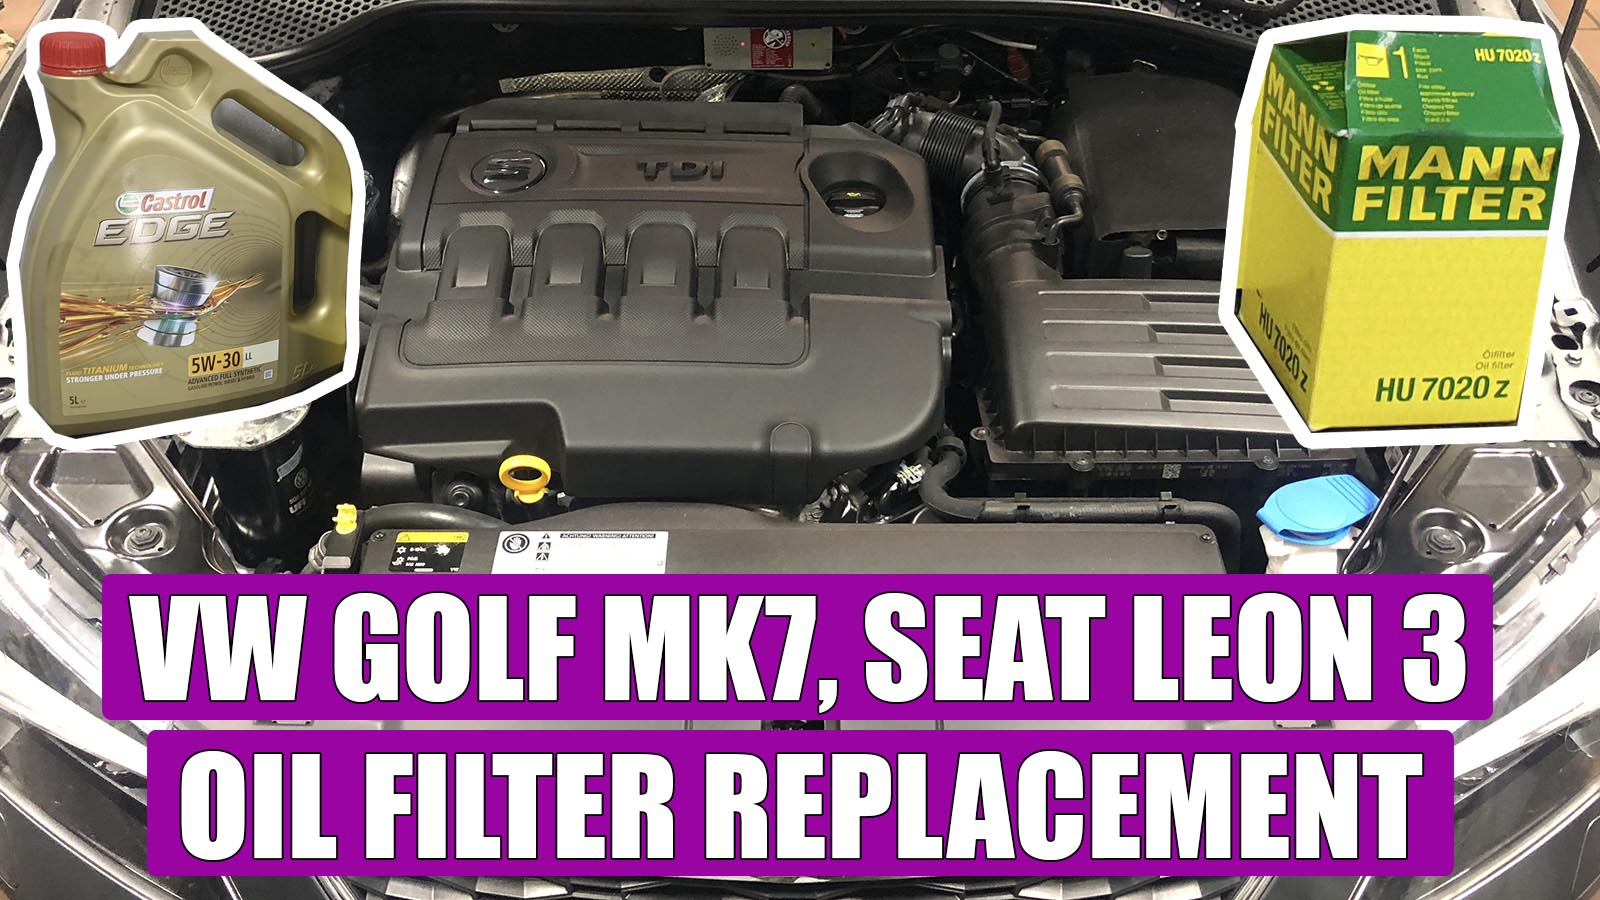 How To Replace Oil Filter Seat Leon 3 Vw Golf Mk7 A3 2 0 Tdi 150 Cp